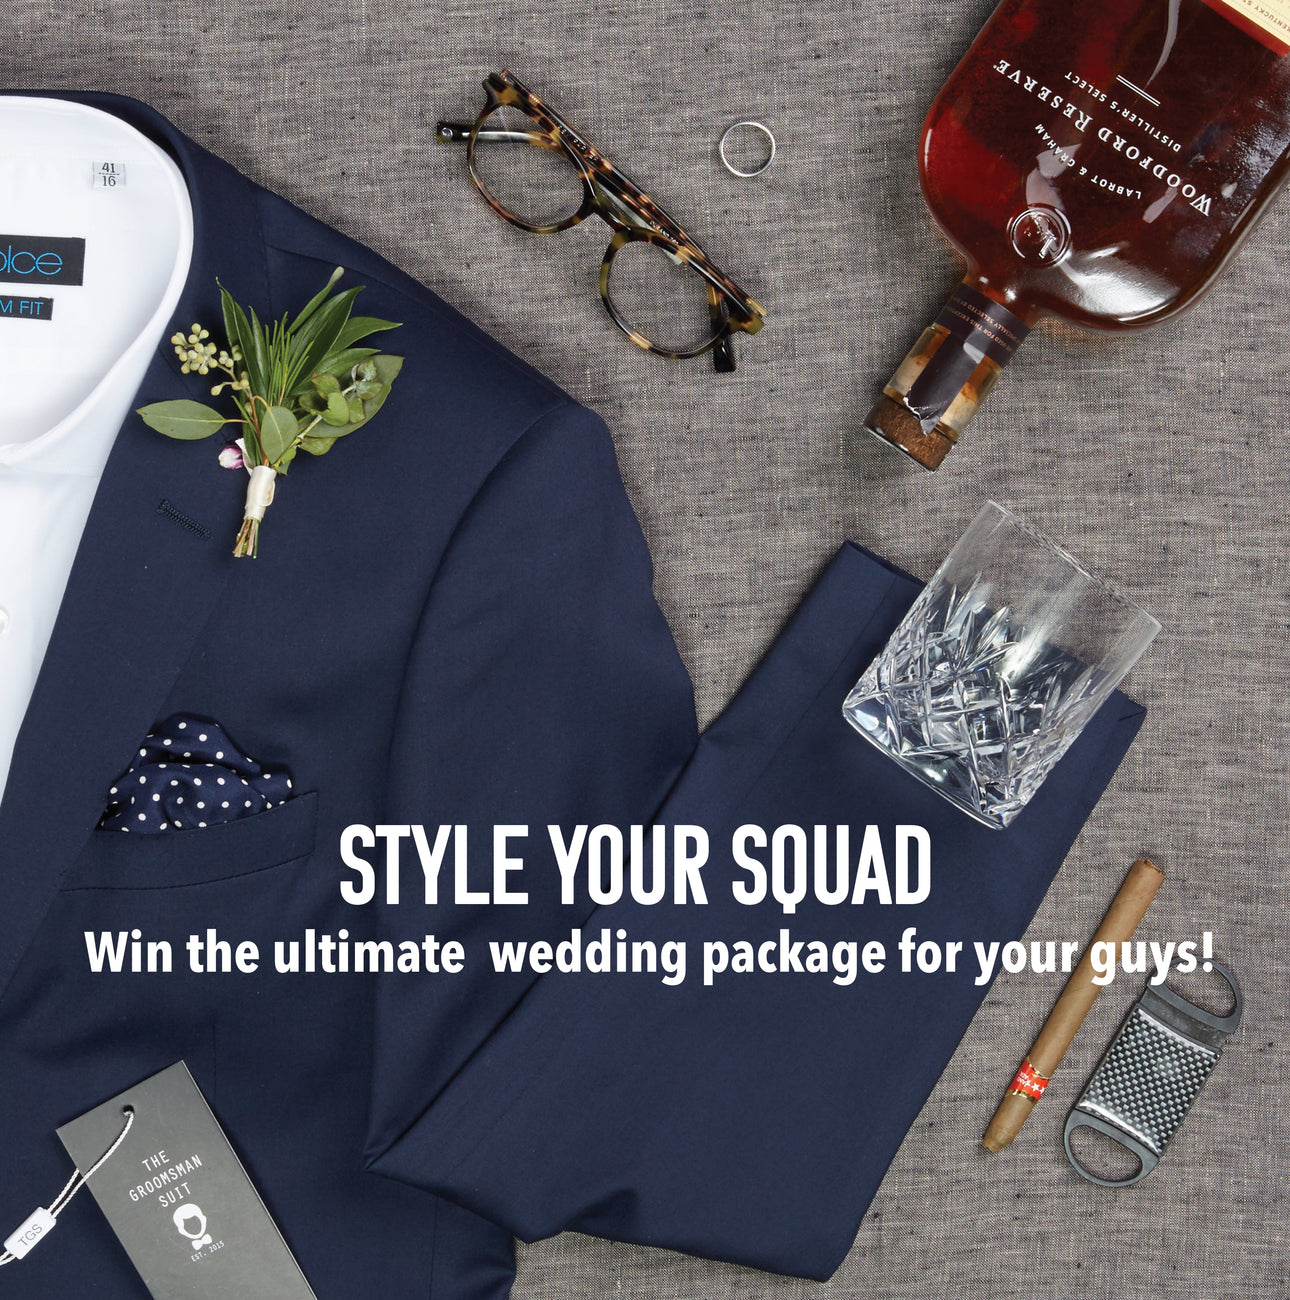 Wedding Giveaway Enter to win menu0027s wedding attire groomsmen gifts and more! & Wedding Giveaway: Enter to win menu0027s wedding attire groomsmen gifts ...